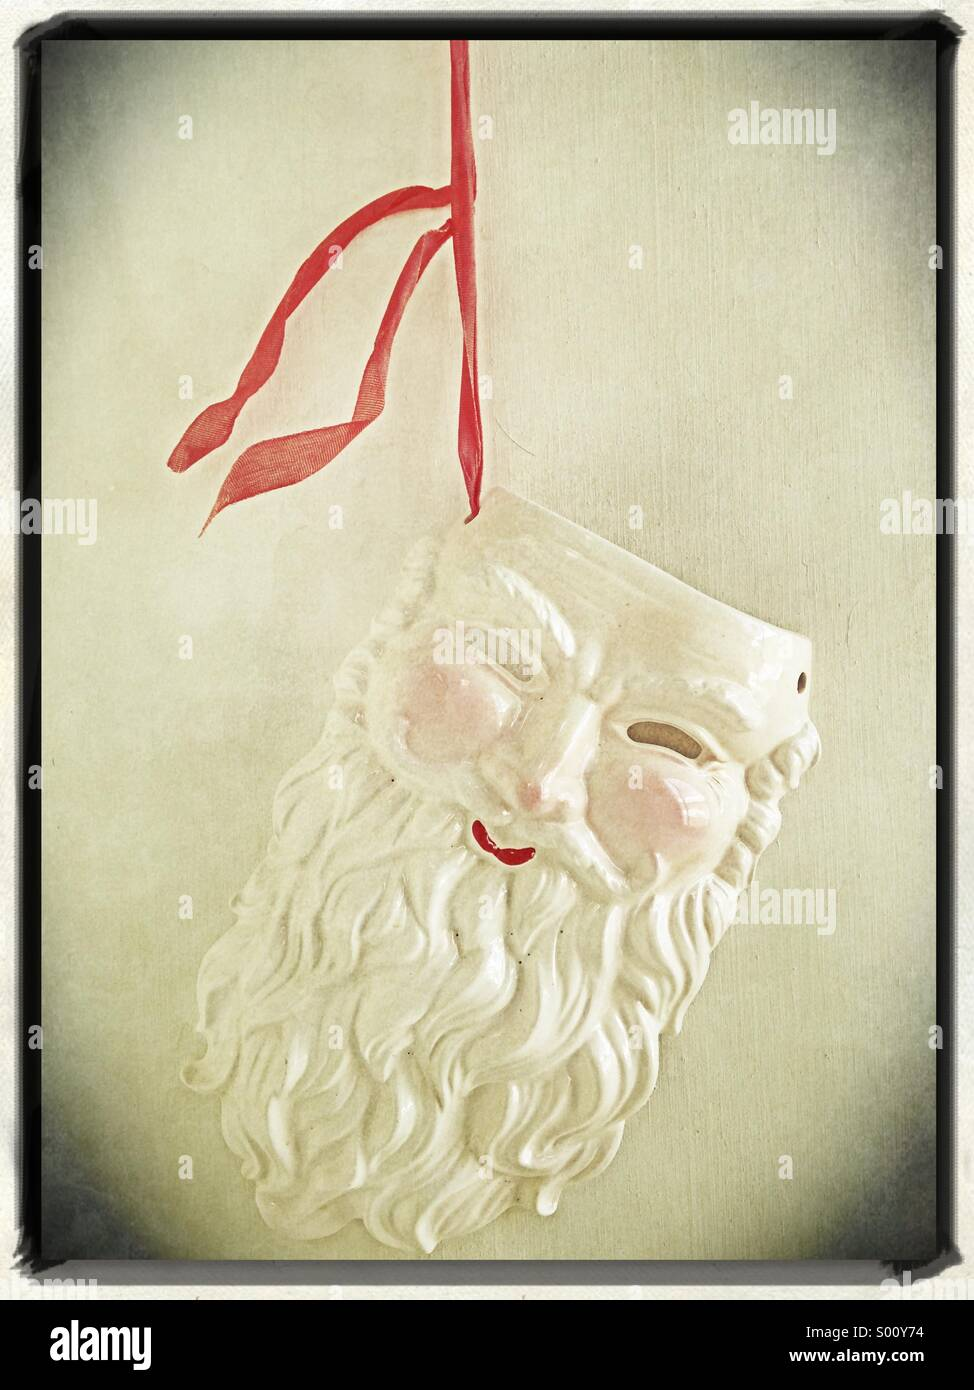 A ceramic santa claus decoration. - Stock Image